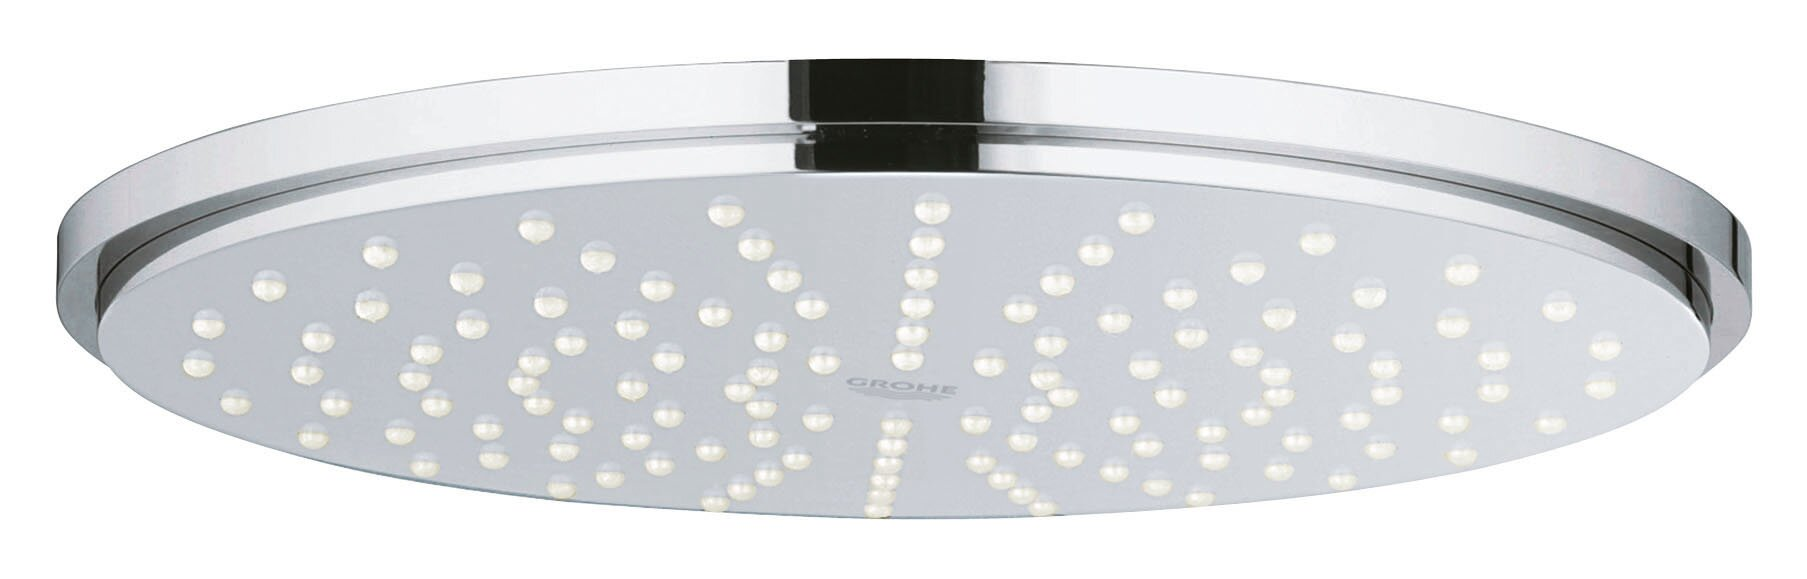 Grohe Rainshower Modern Shower Head with Watercare and DreamSpray ...